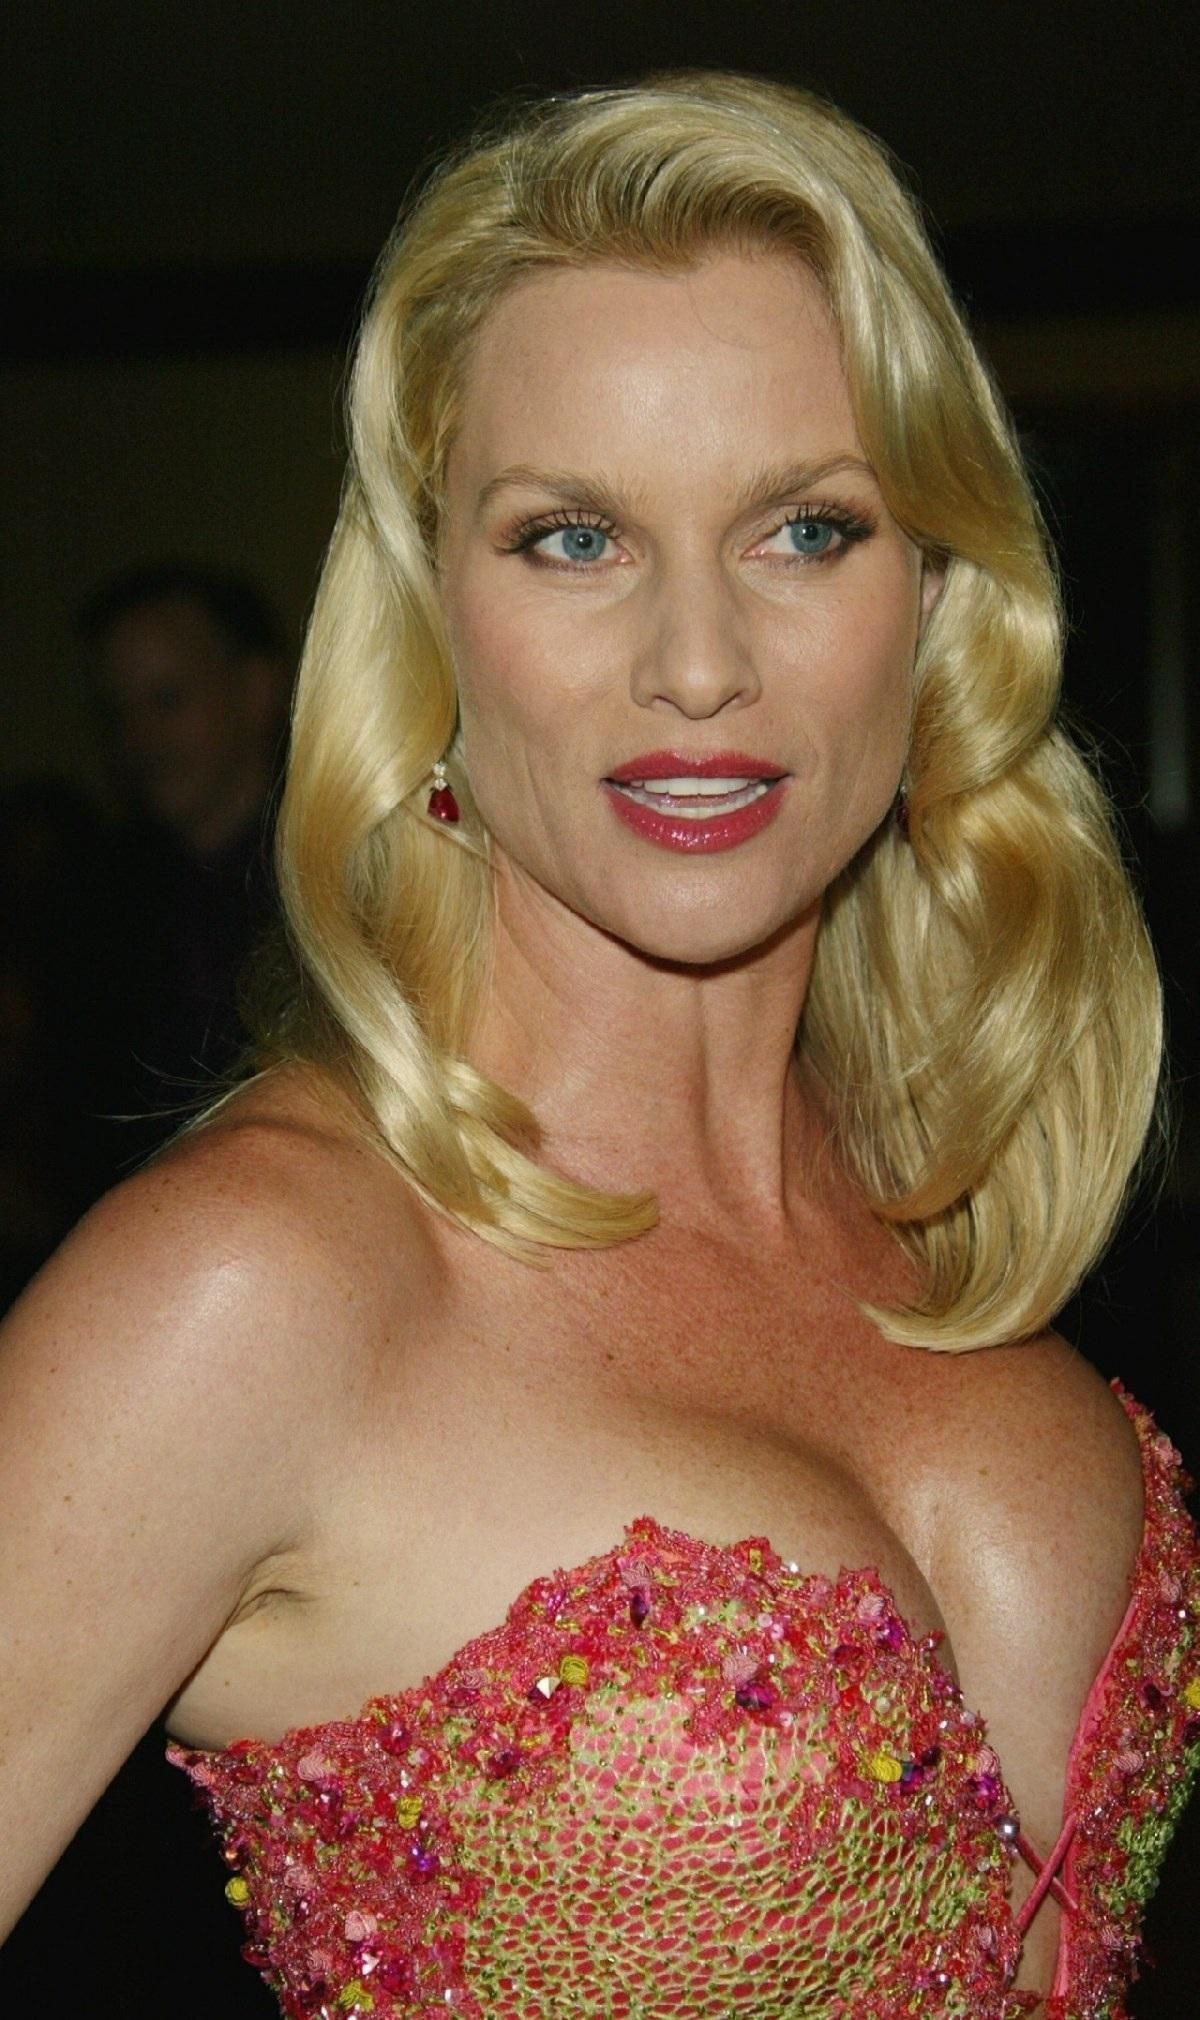 Celebrity Nicollette Sheridan nudes (74 images), Is a cute